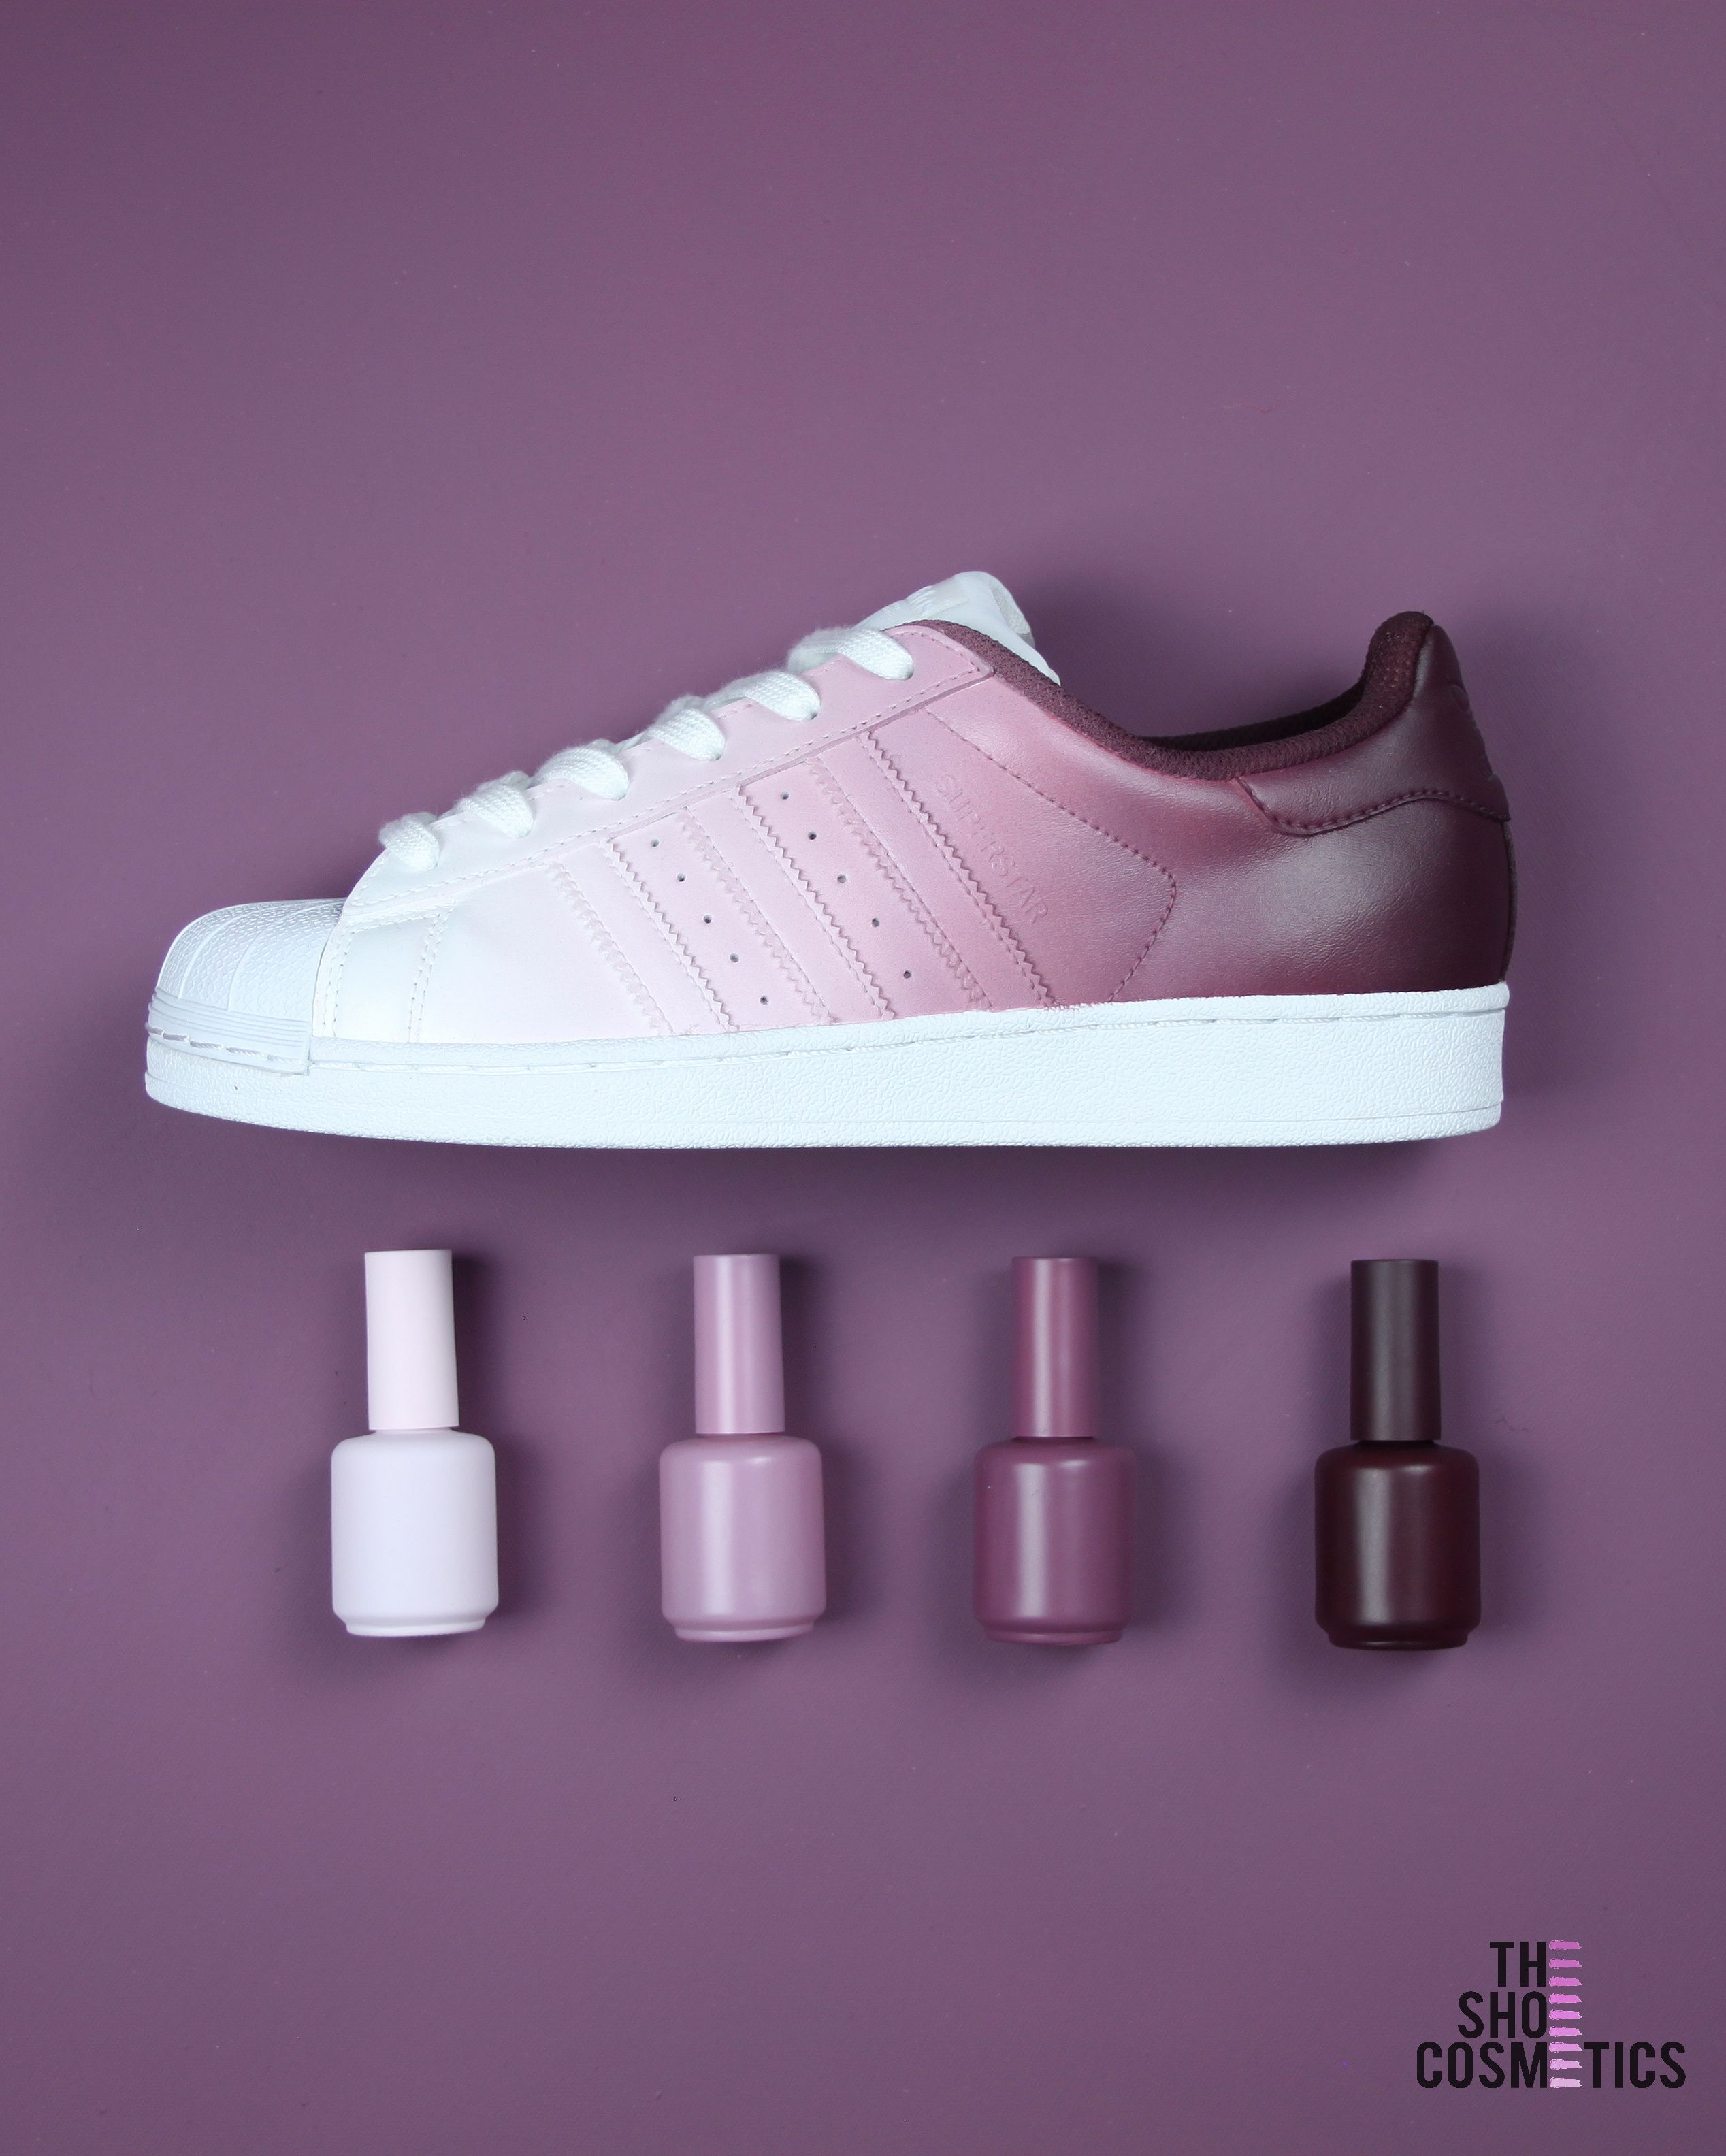 save off 58f49 4e7a7 Cute womens Custom Adidas sneakers. TheShoeCosmetics Burgundy Ombre Adidas  original superstars are a stylish,